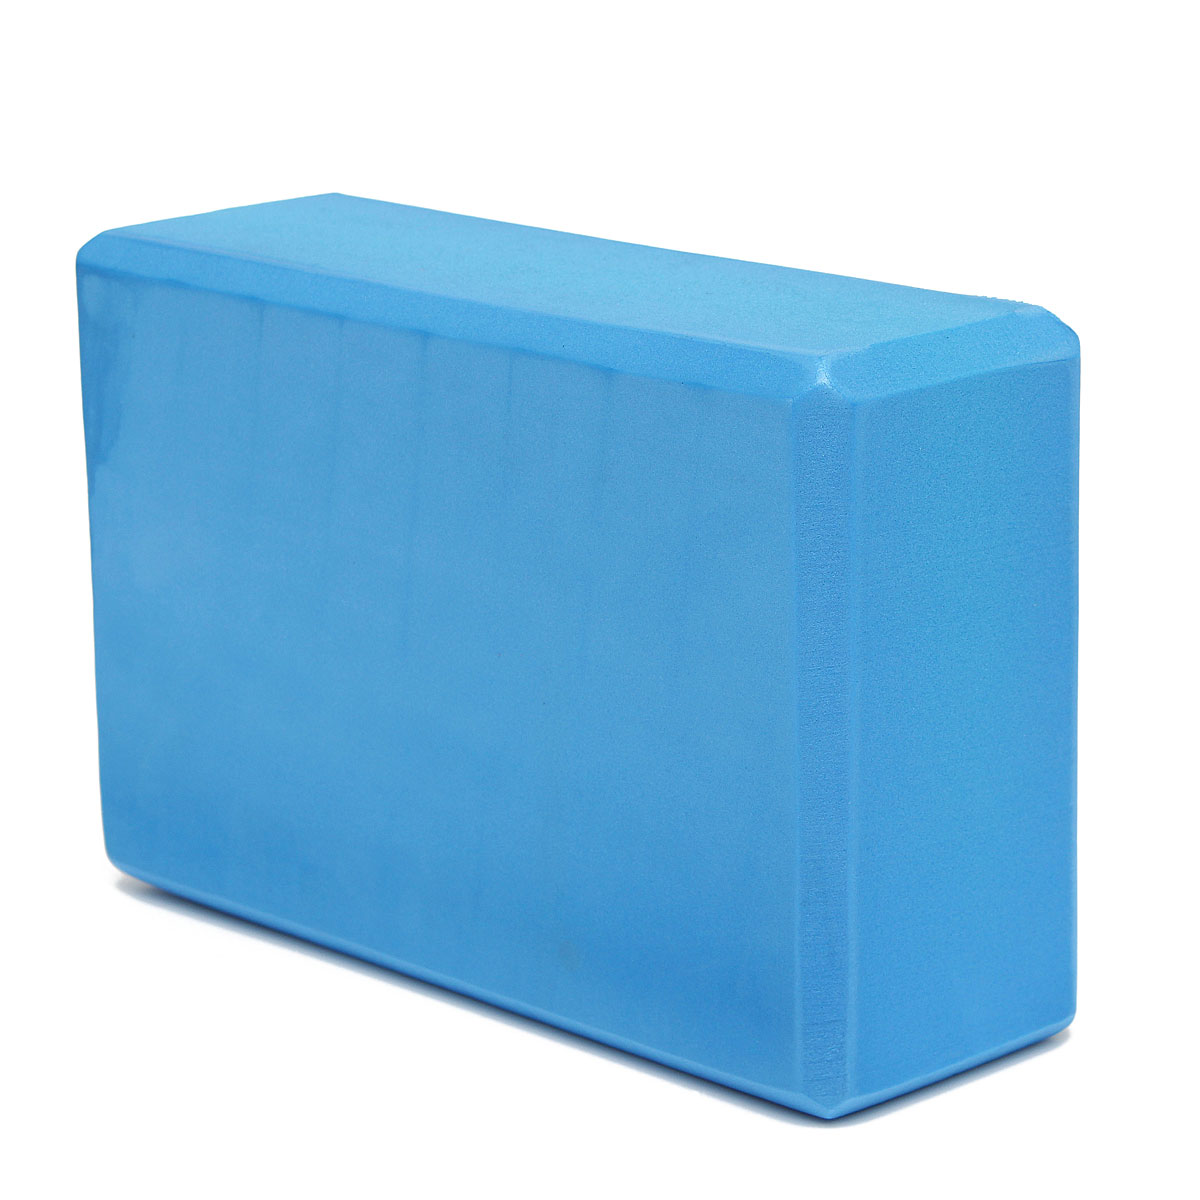 Yoga Eva Foam Block Brick Foaming Stretch Home Exercise